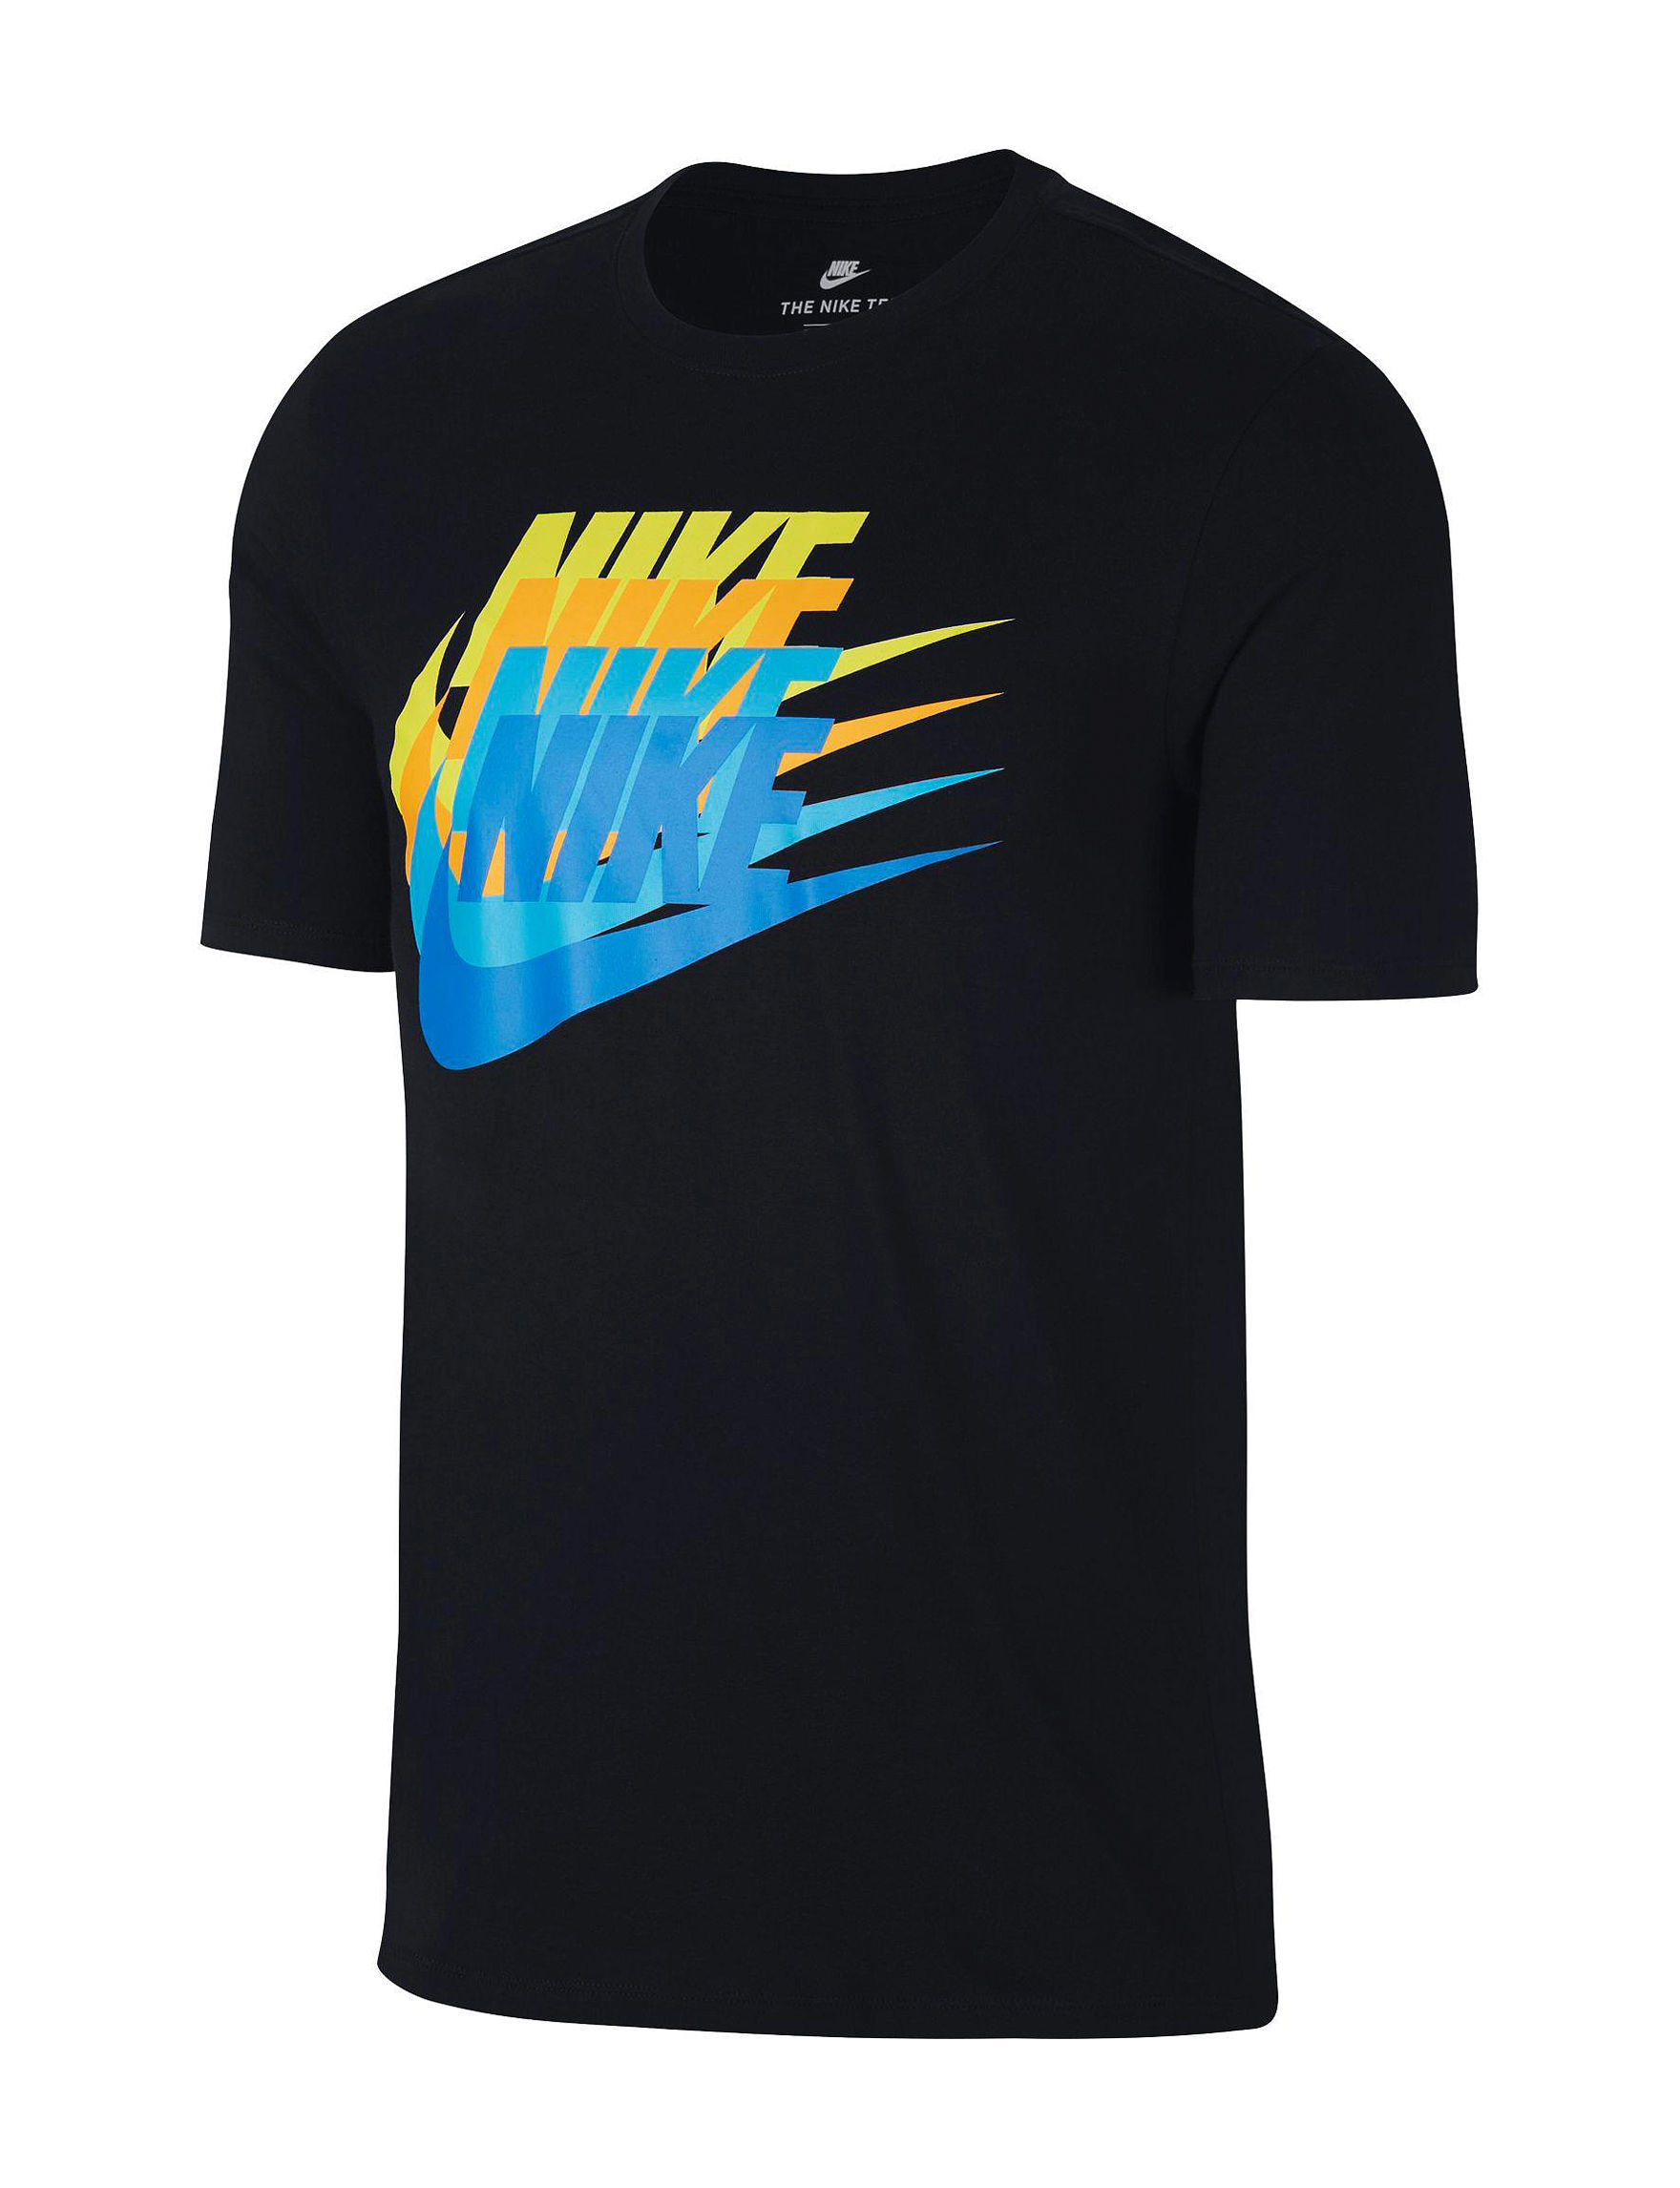 Nike Black Tees & Tanks